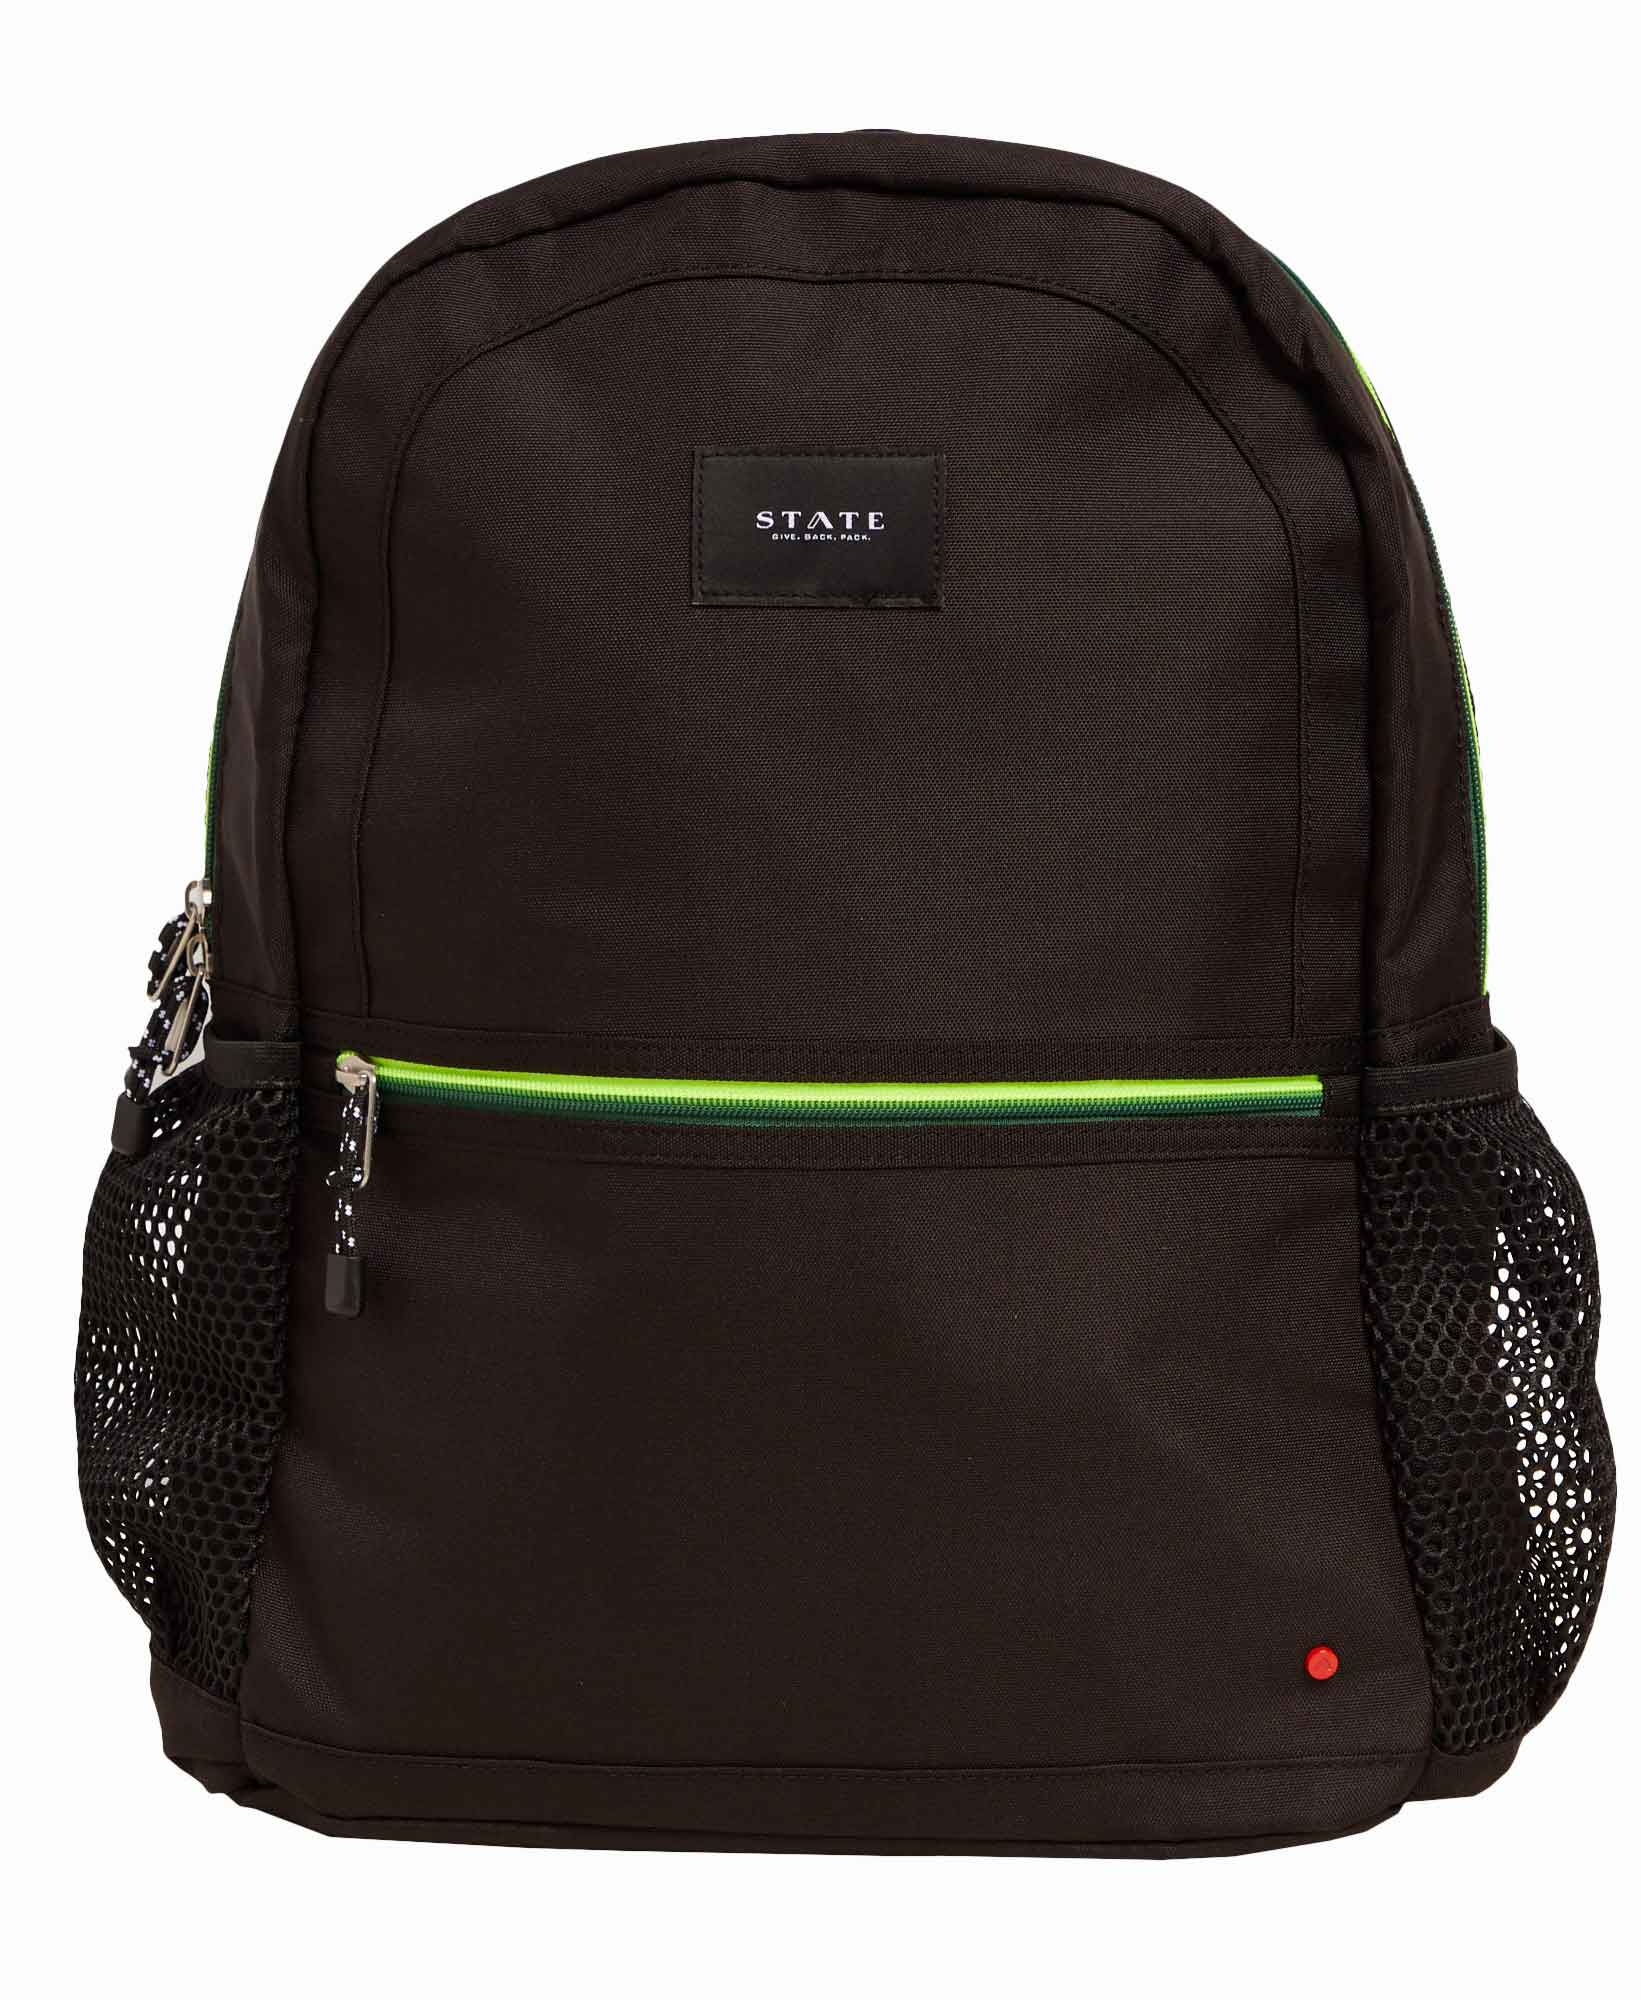 State Kane Double Pocket Green Piping Backpack